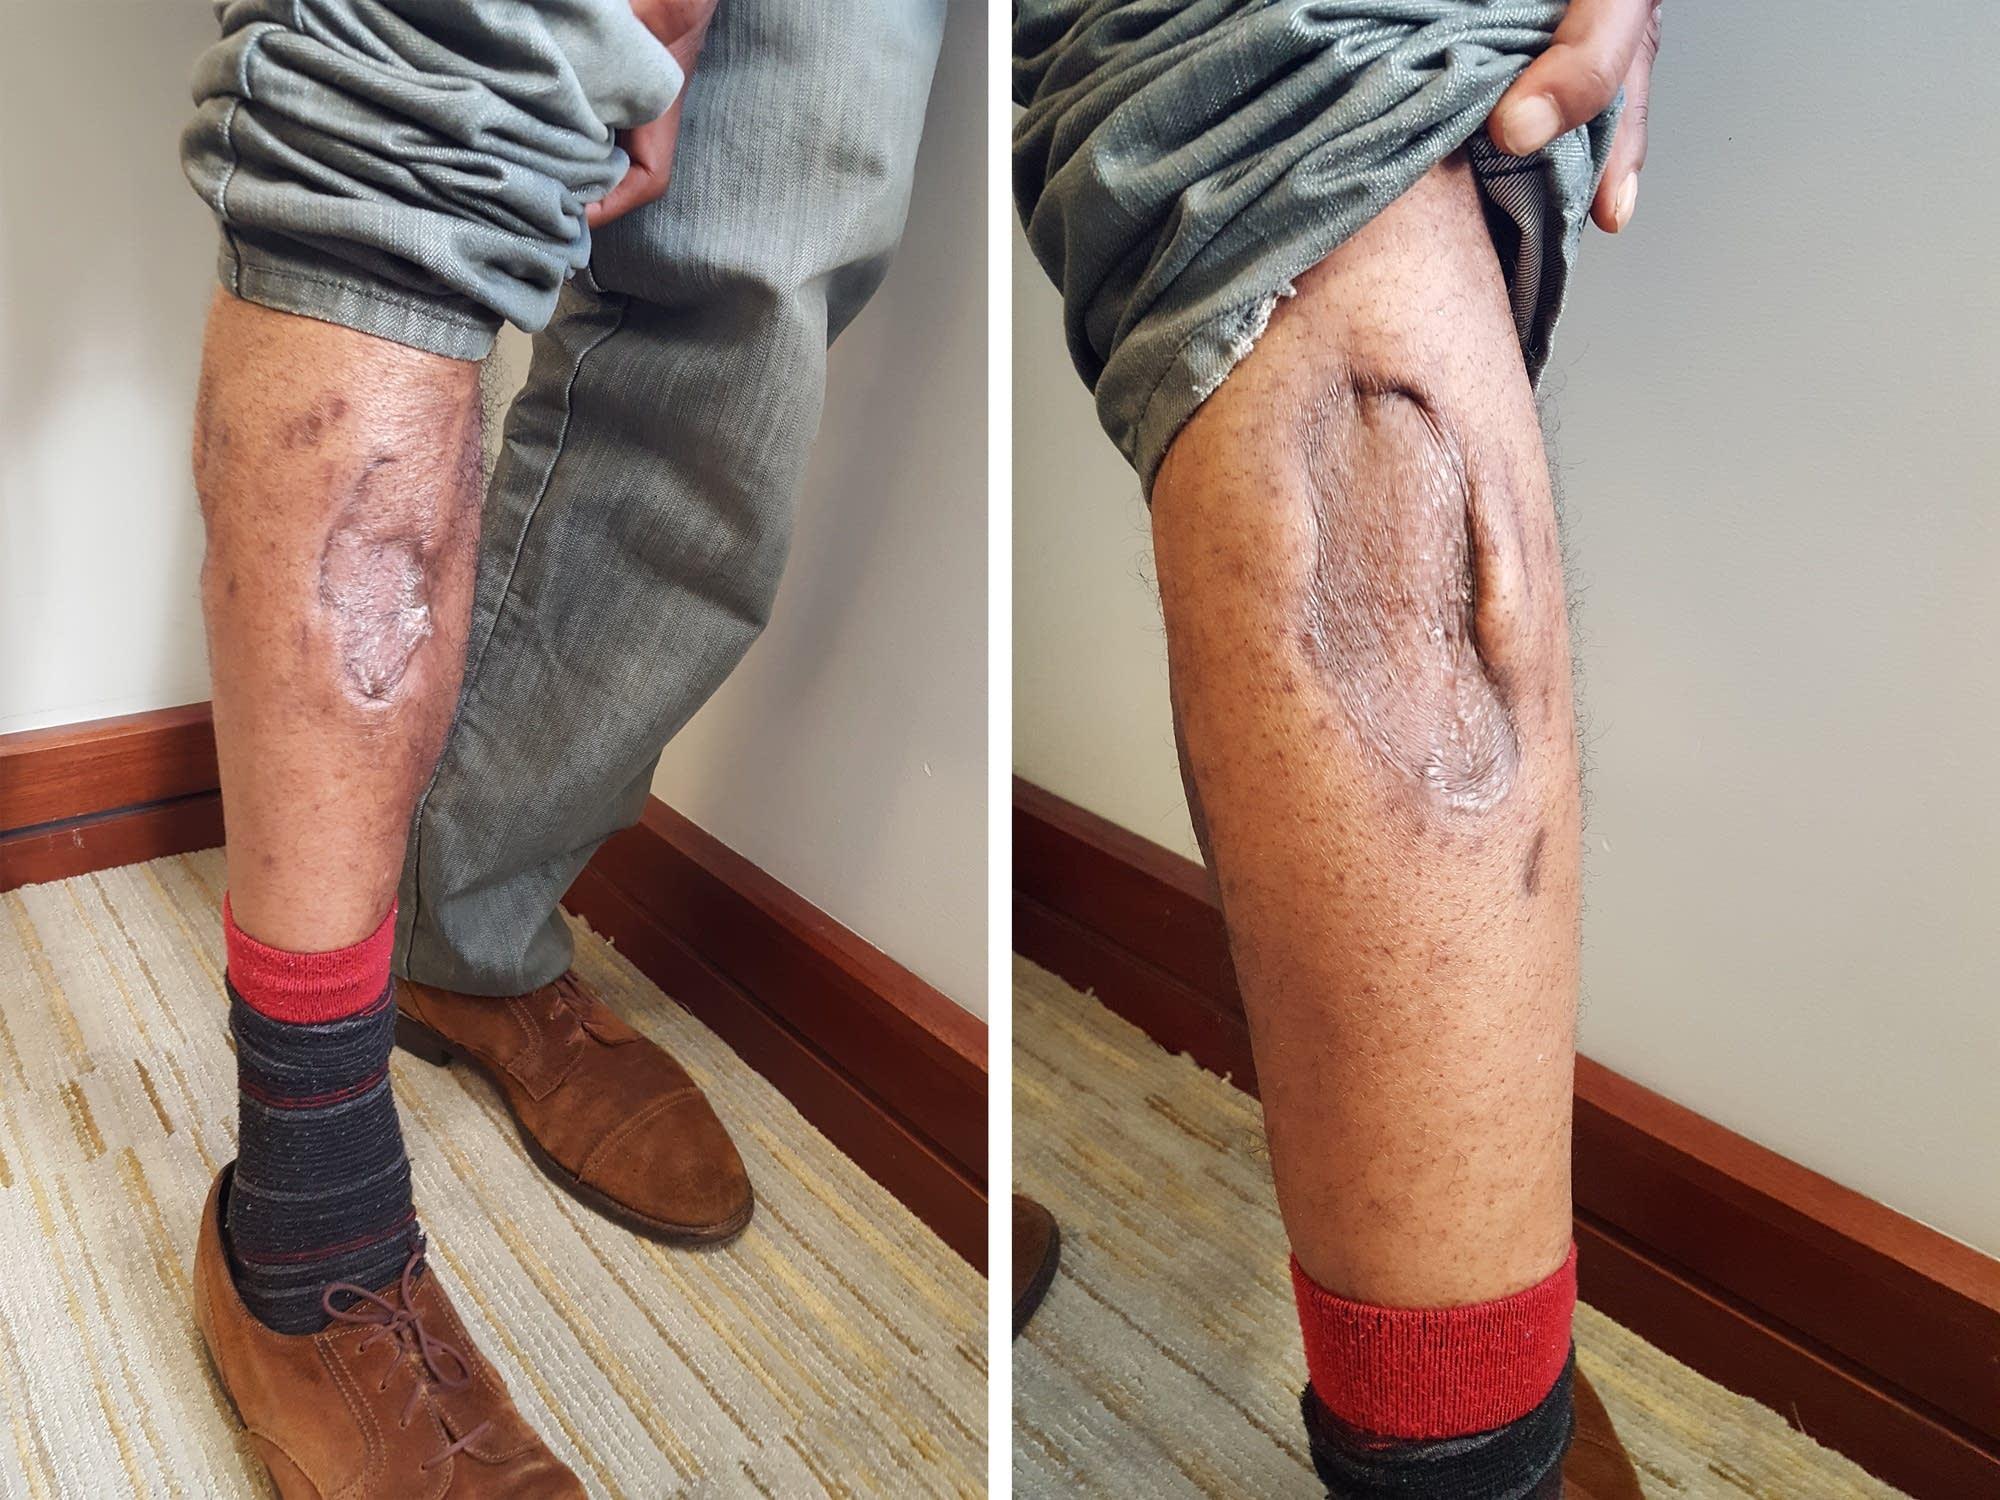 Wounds to Frank Baker's legs after K-9 attack.